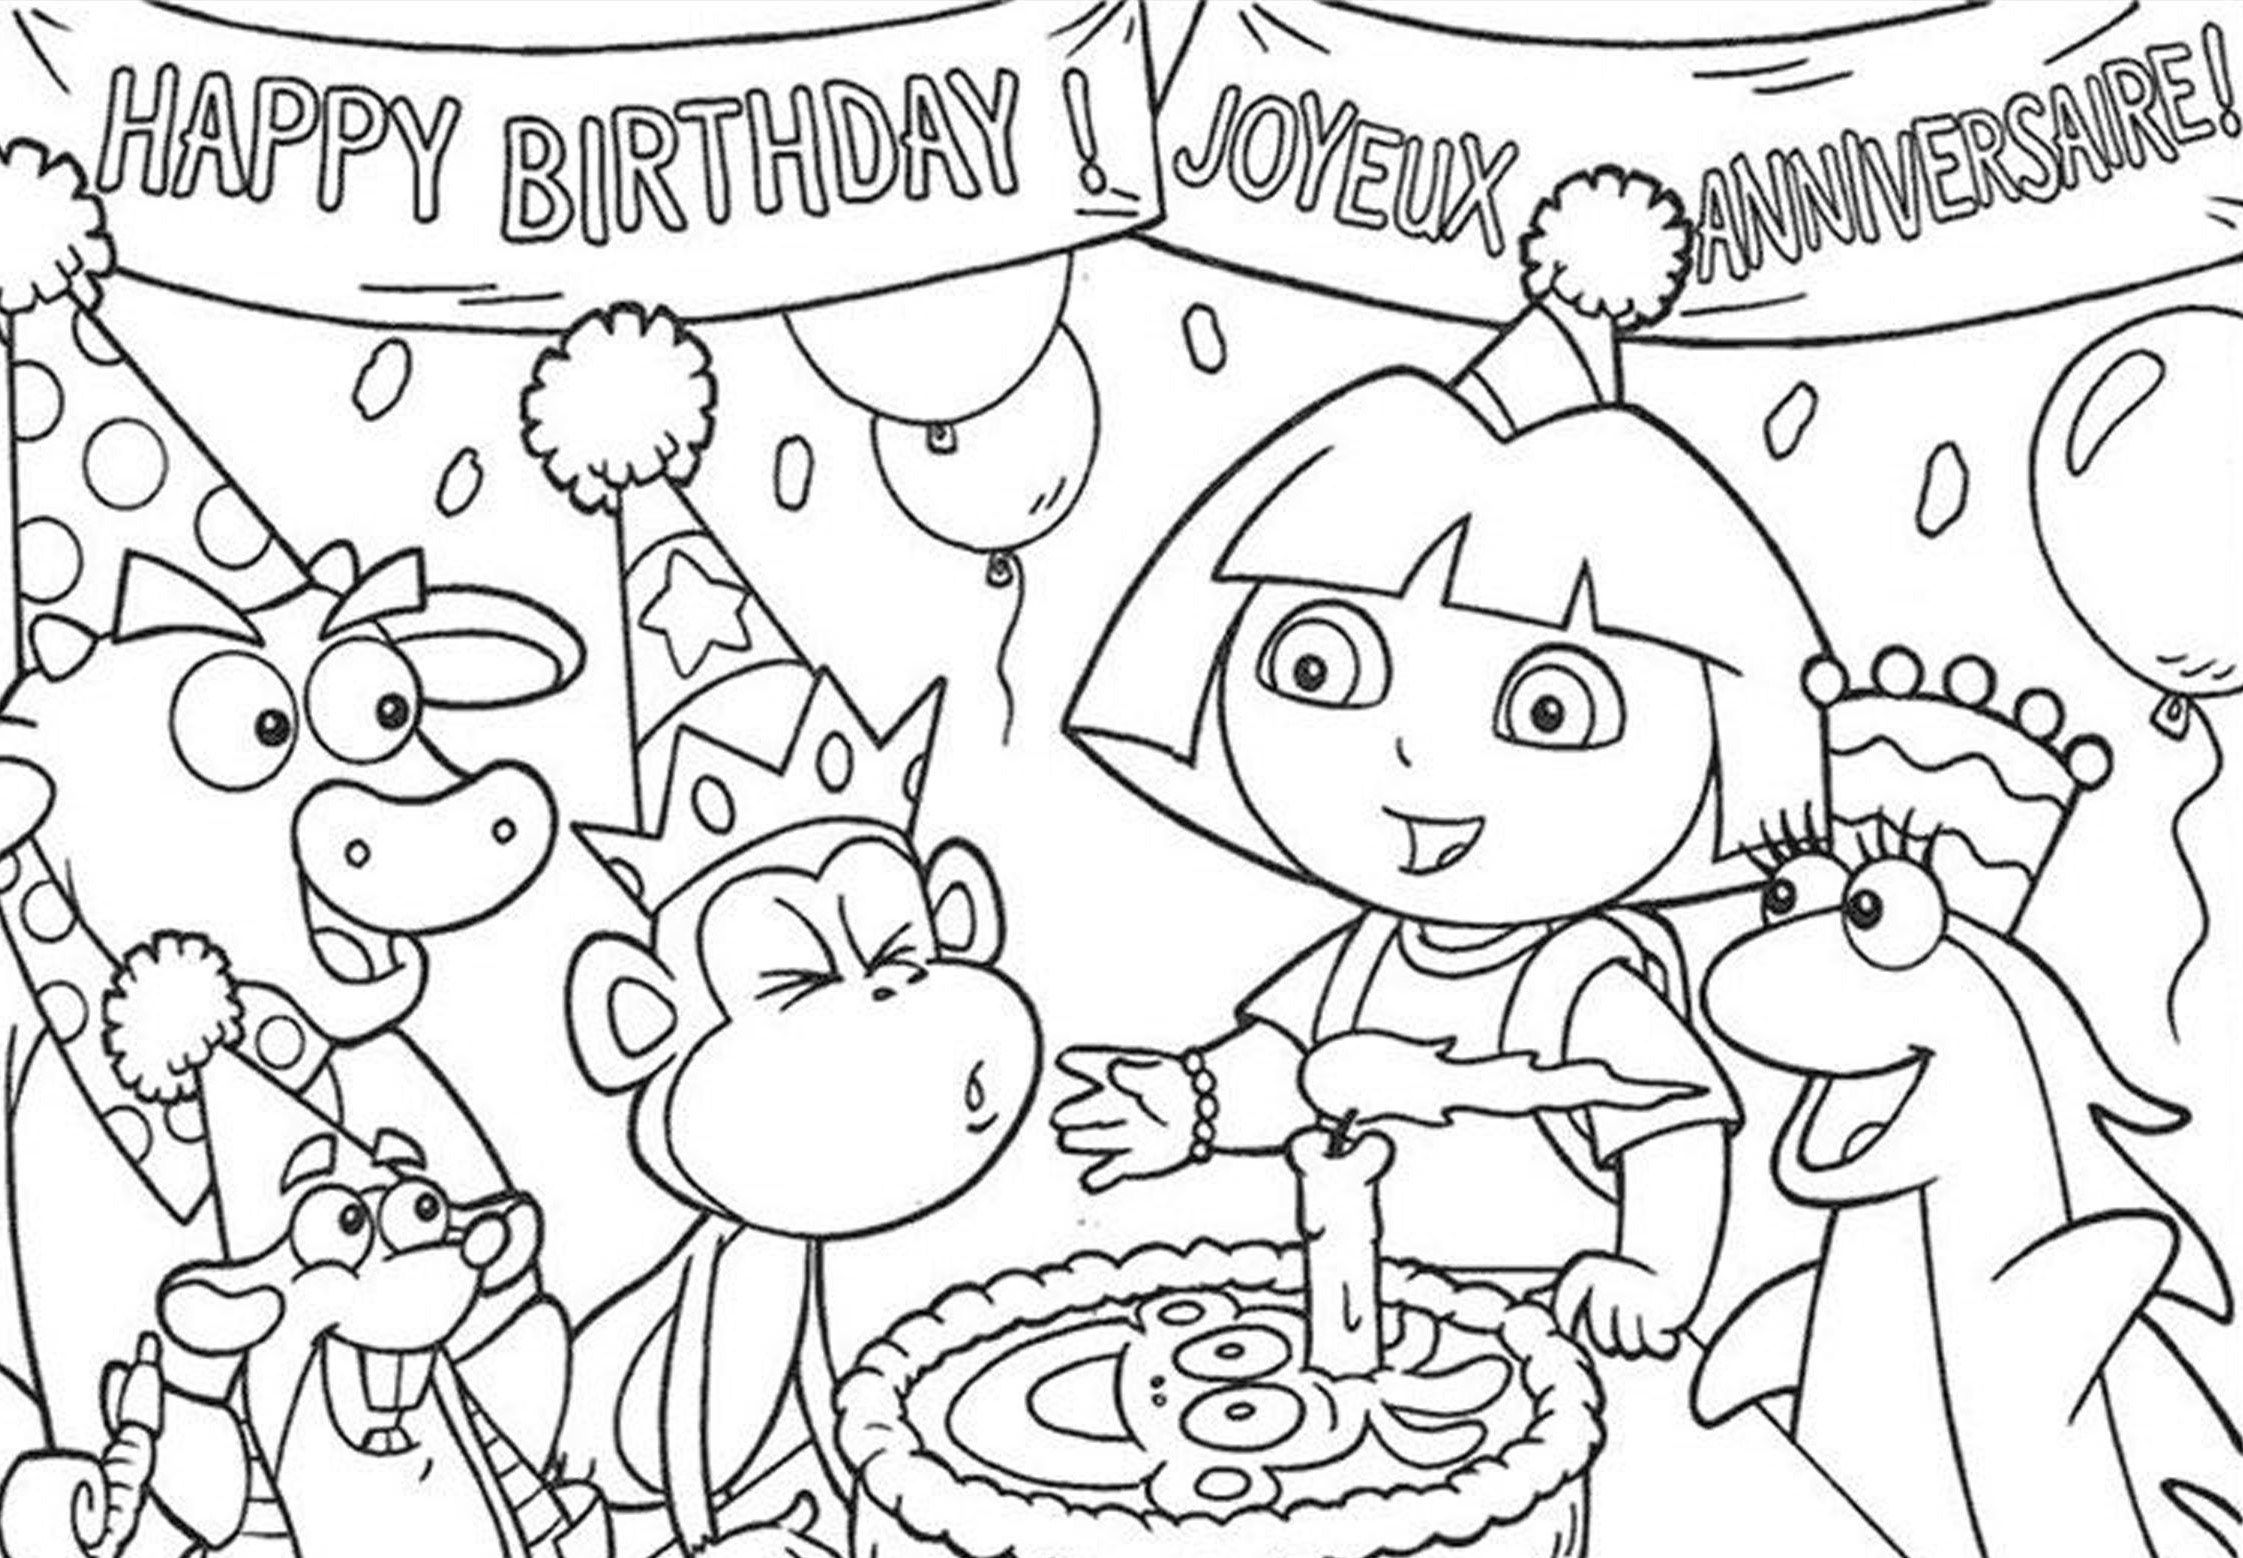 Dora - Birthday Colouring Page | For LILY et cie | Pinterest